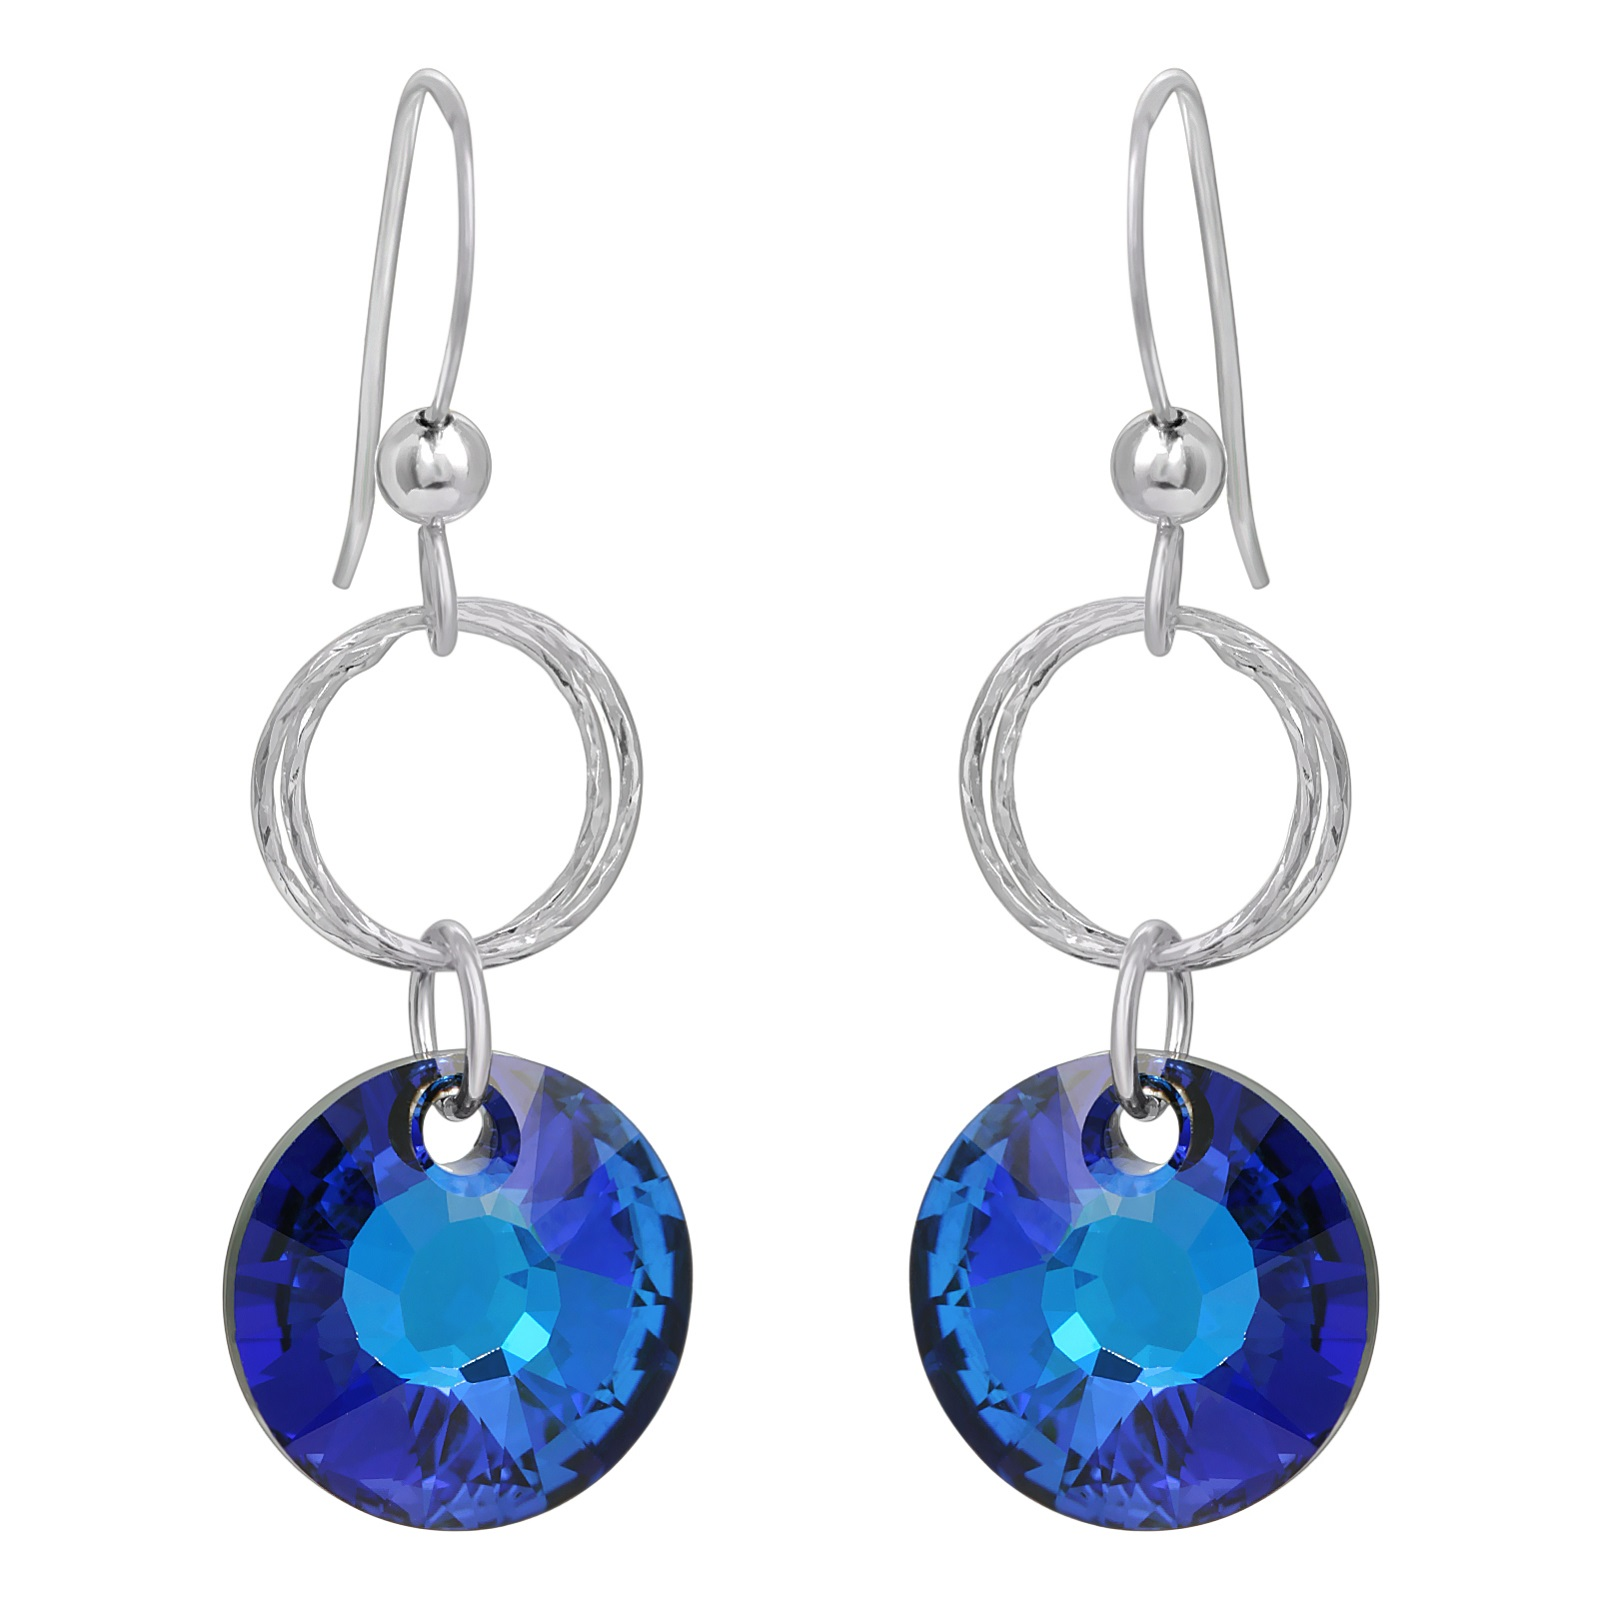 Double Diamond Cut Crystal Earrings - Bermuda Blue